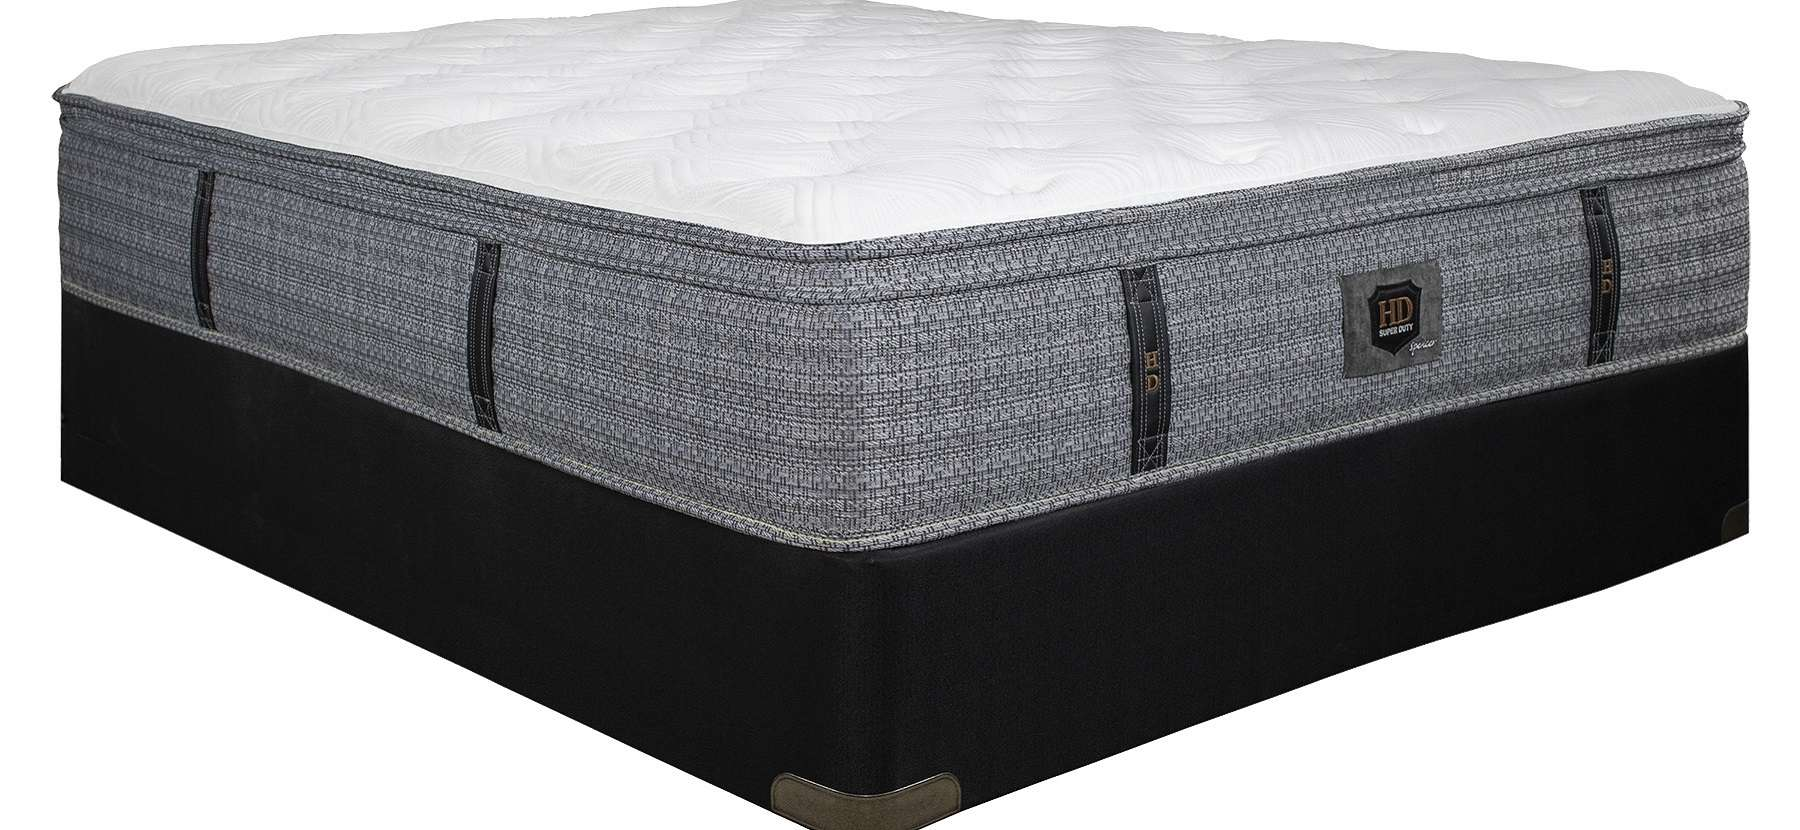 Spencer Mattress and BS silo